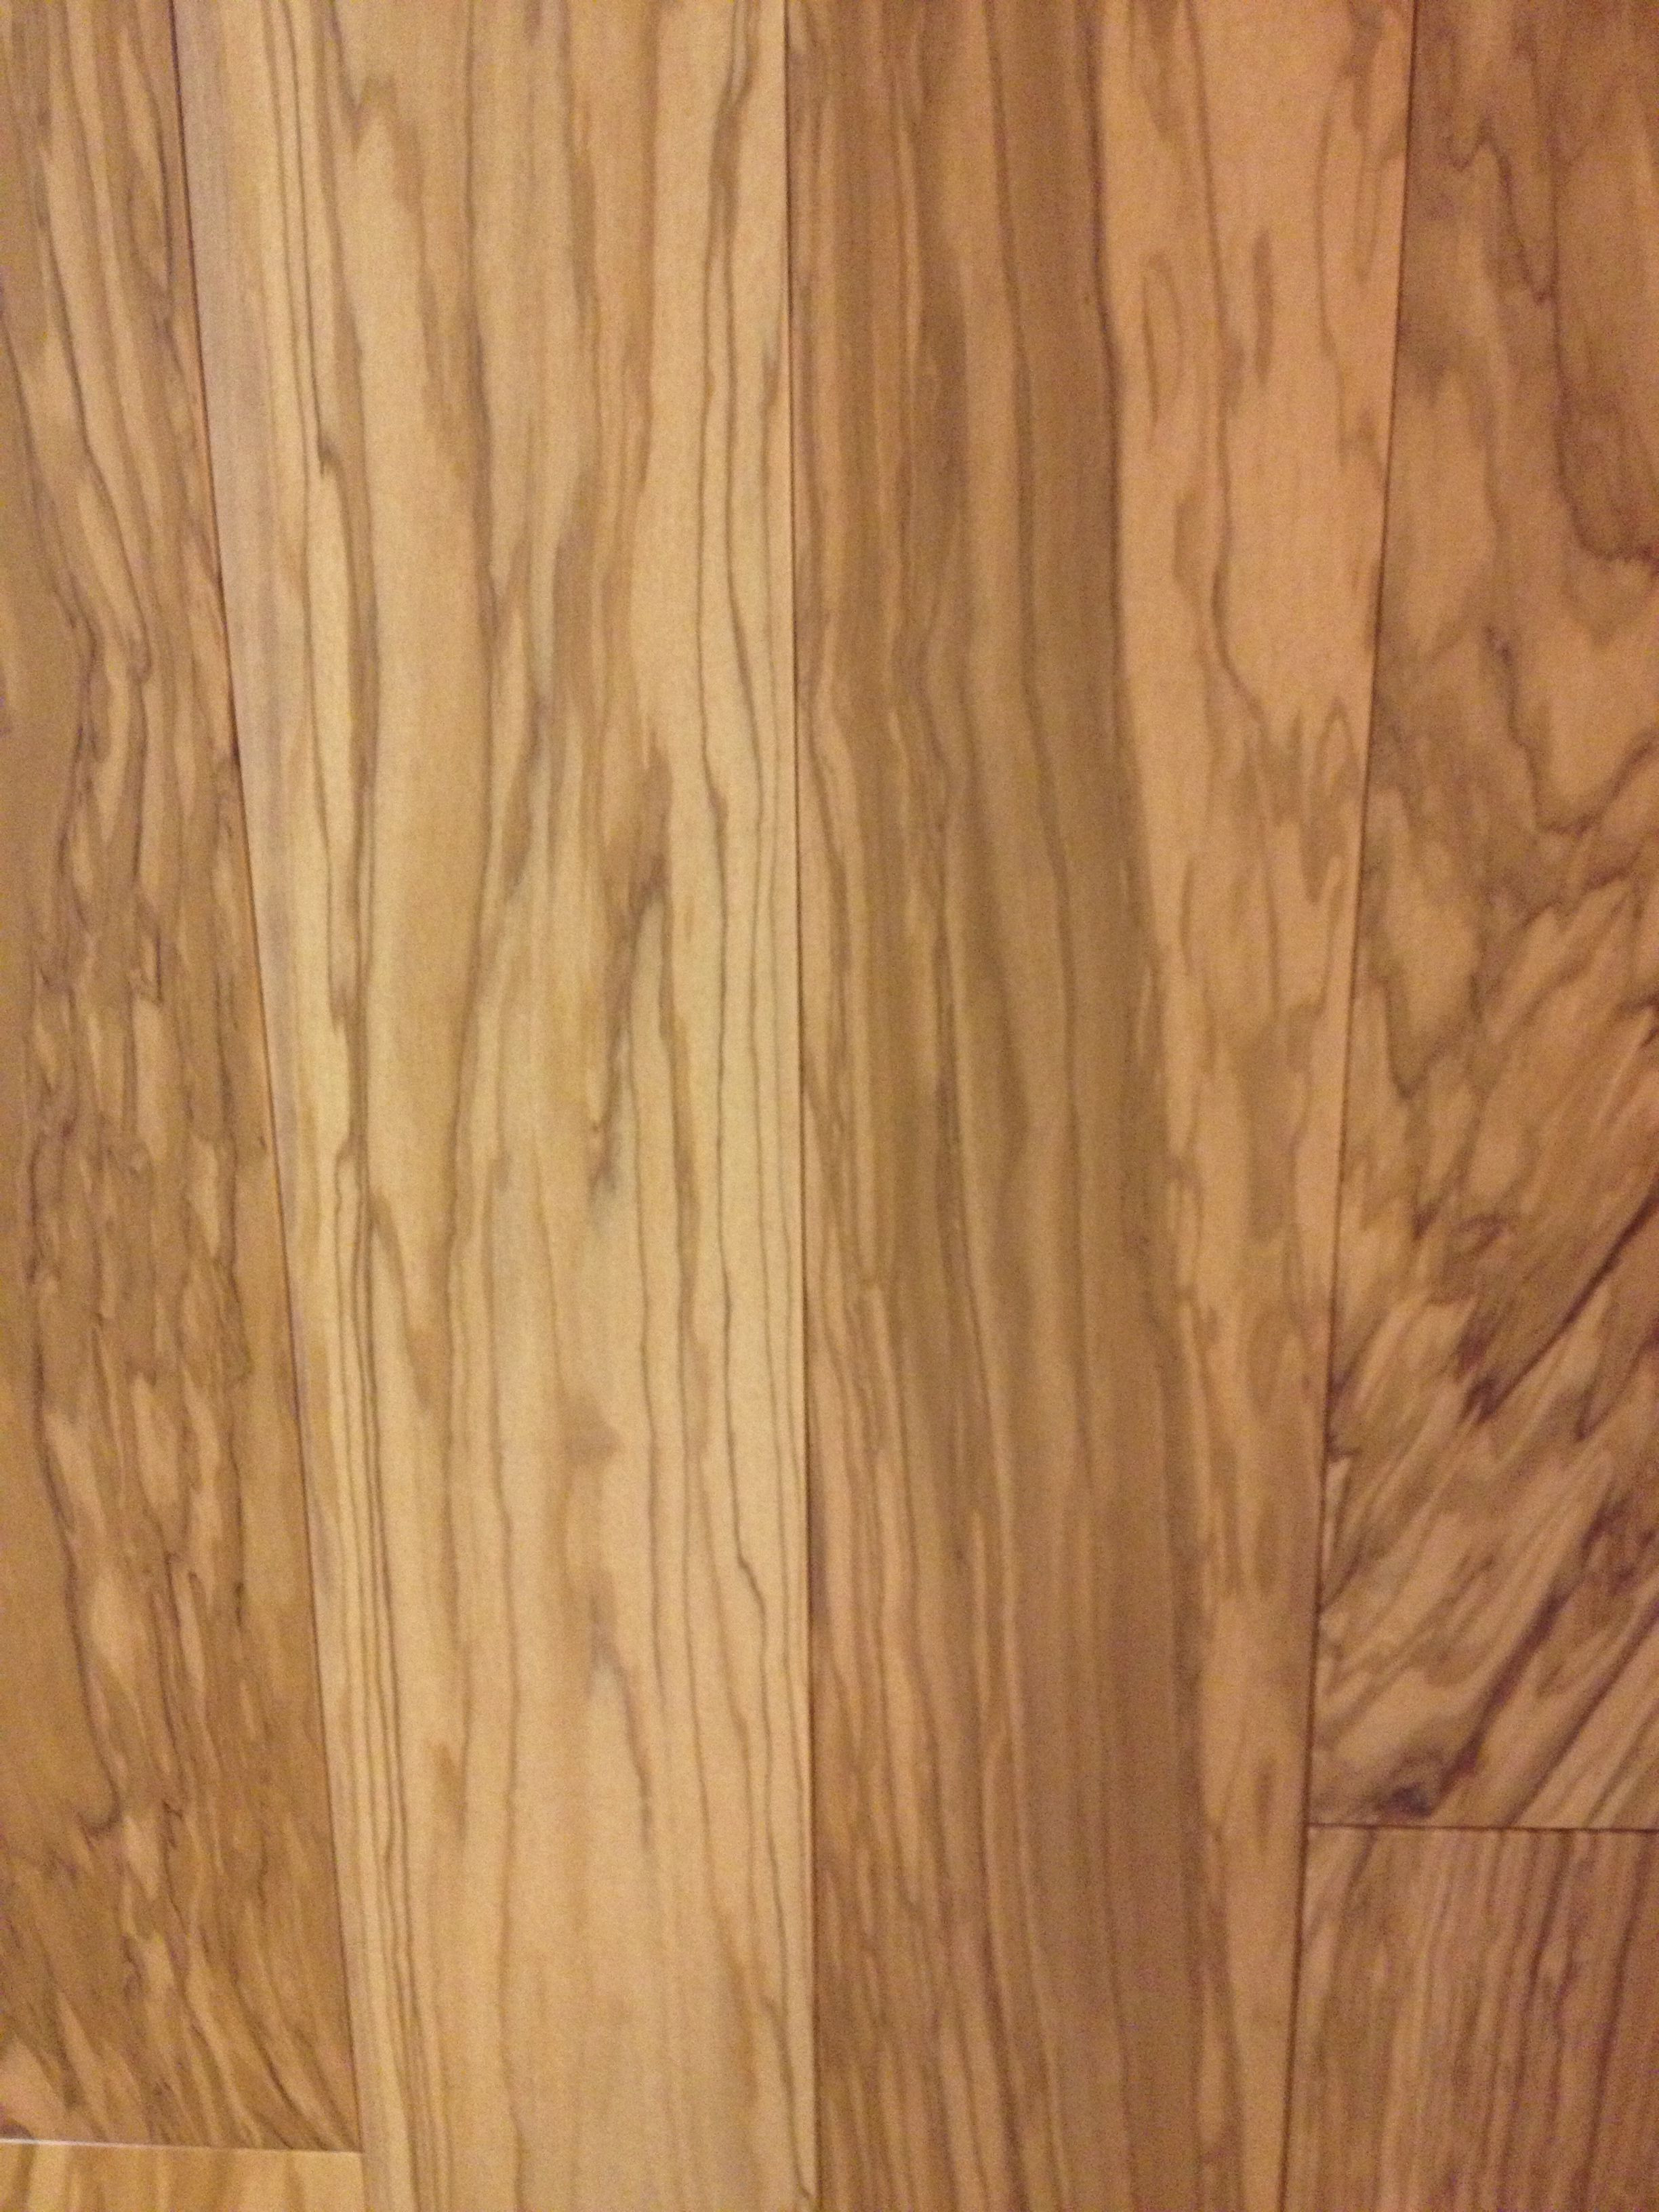 custom hardwood flooring toronto of tuscany olive wood floor there is nothing quite like olive wood for with regard to tuscany olive wood floor there is nothing quite like olive wood for turning your home